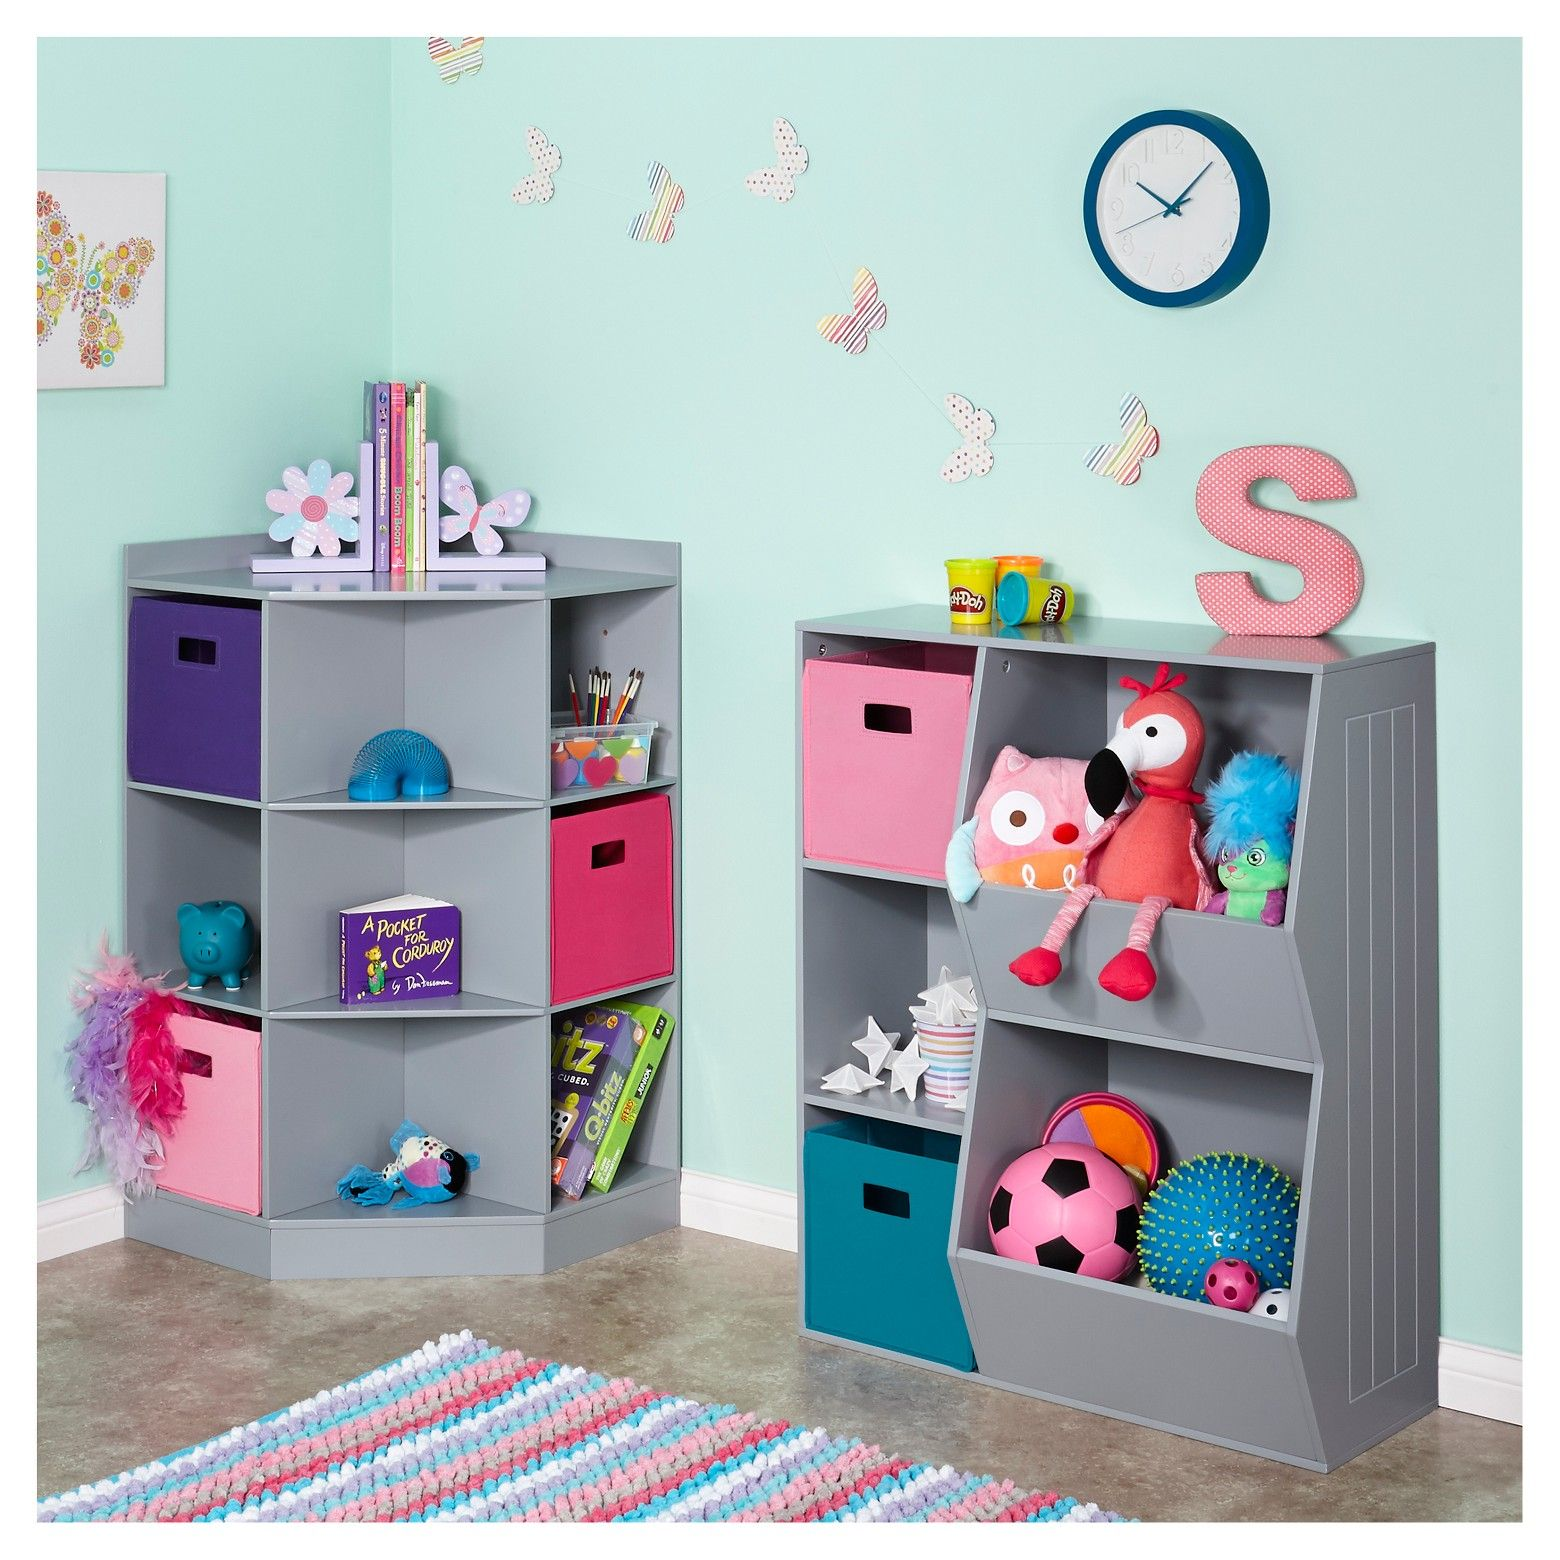 Add A Variety Of Storage Options To Kid Amp Rsquo S Bedrooms Playrooms Or Other Rooms In The House With Small Kids Room Kid Room Decor Girls Room Organization